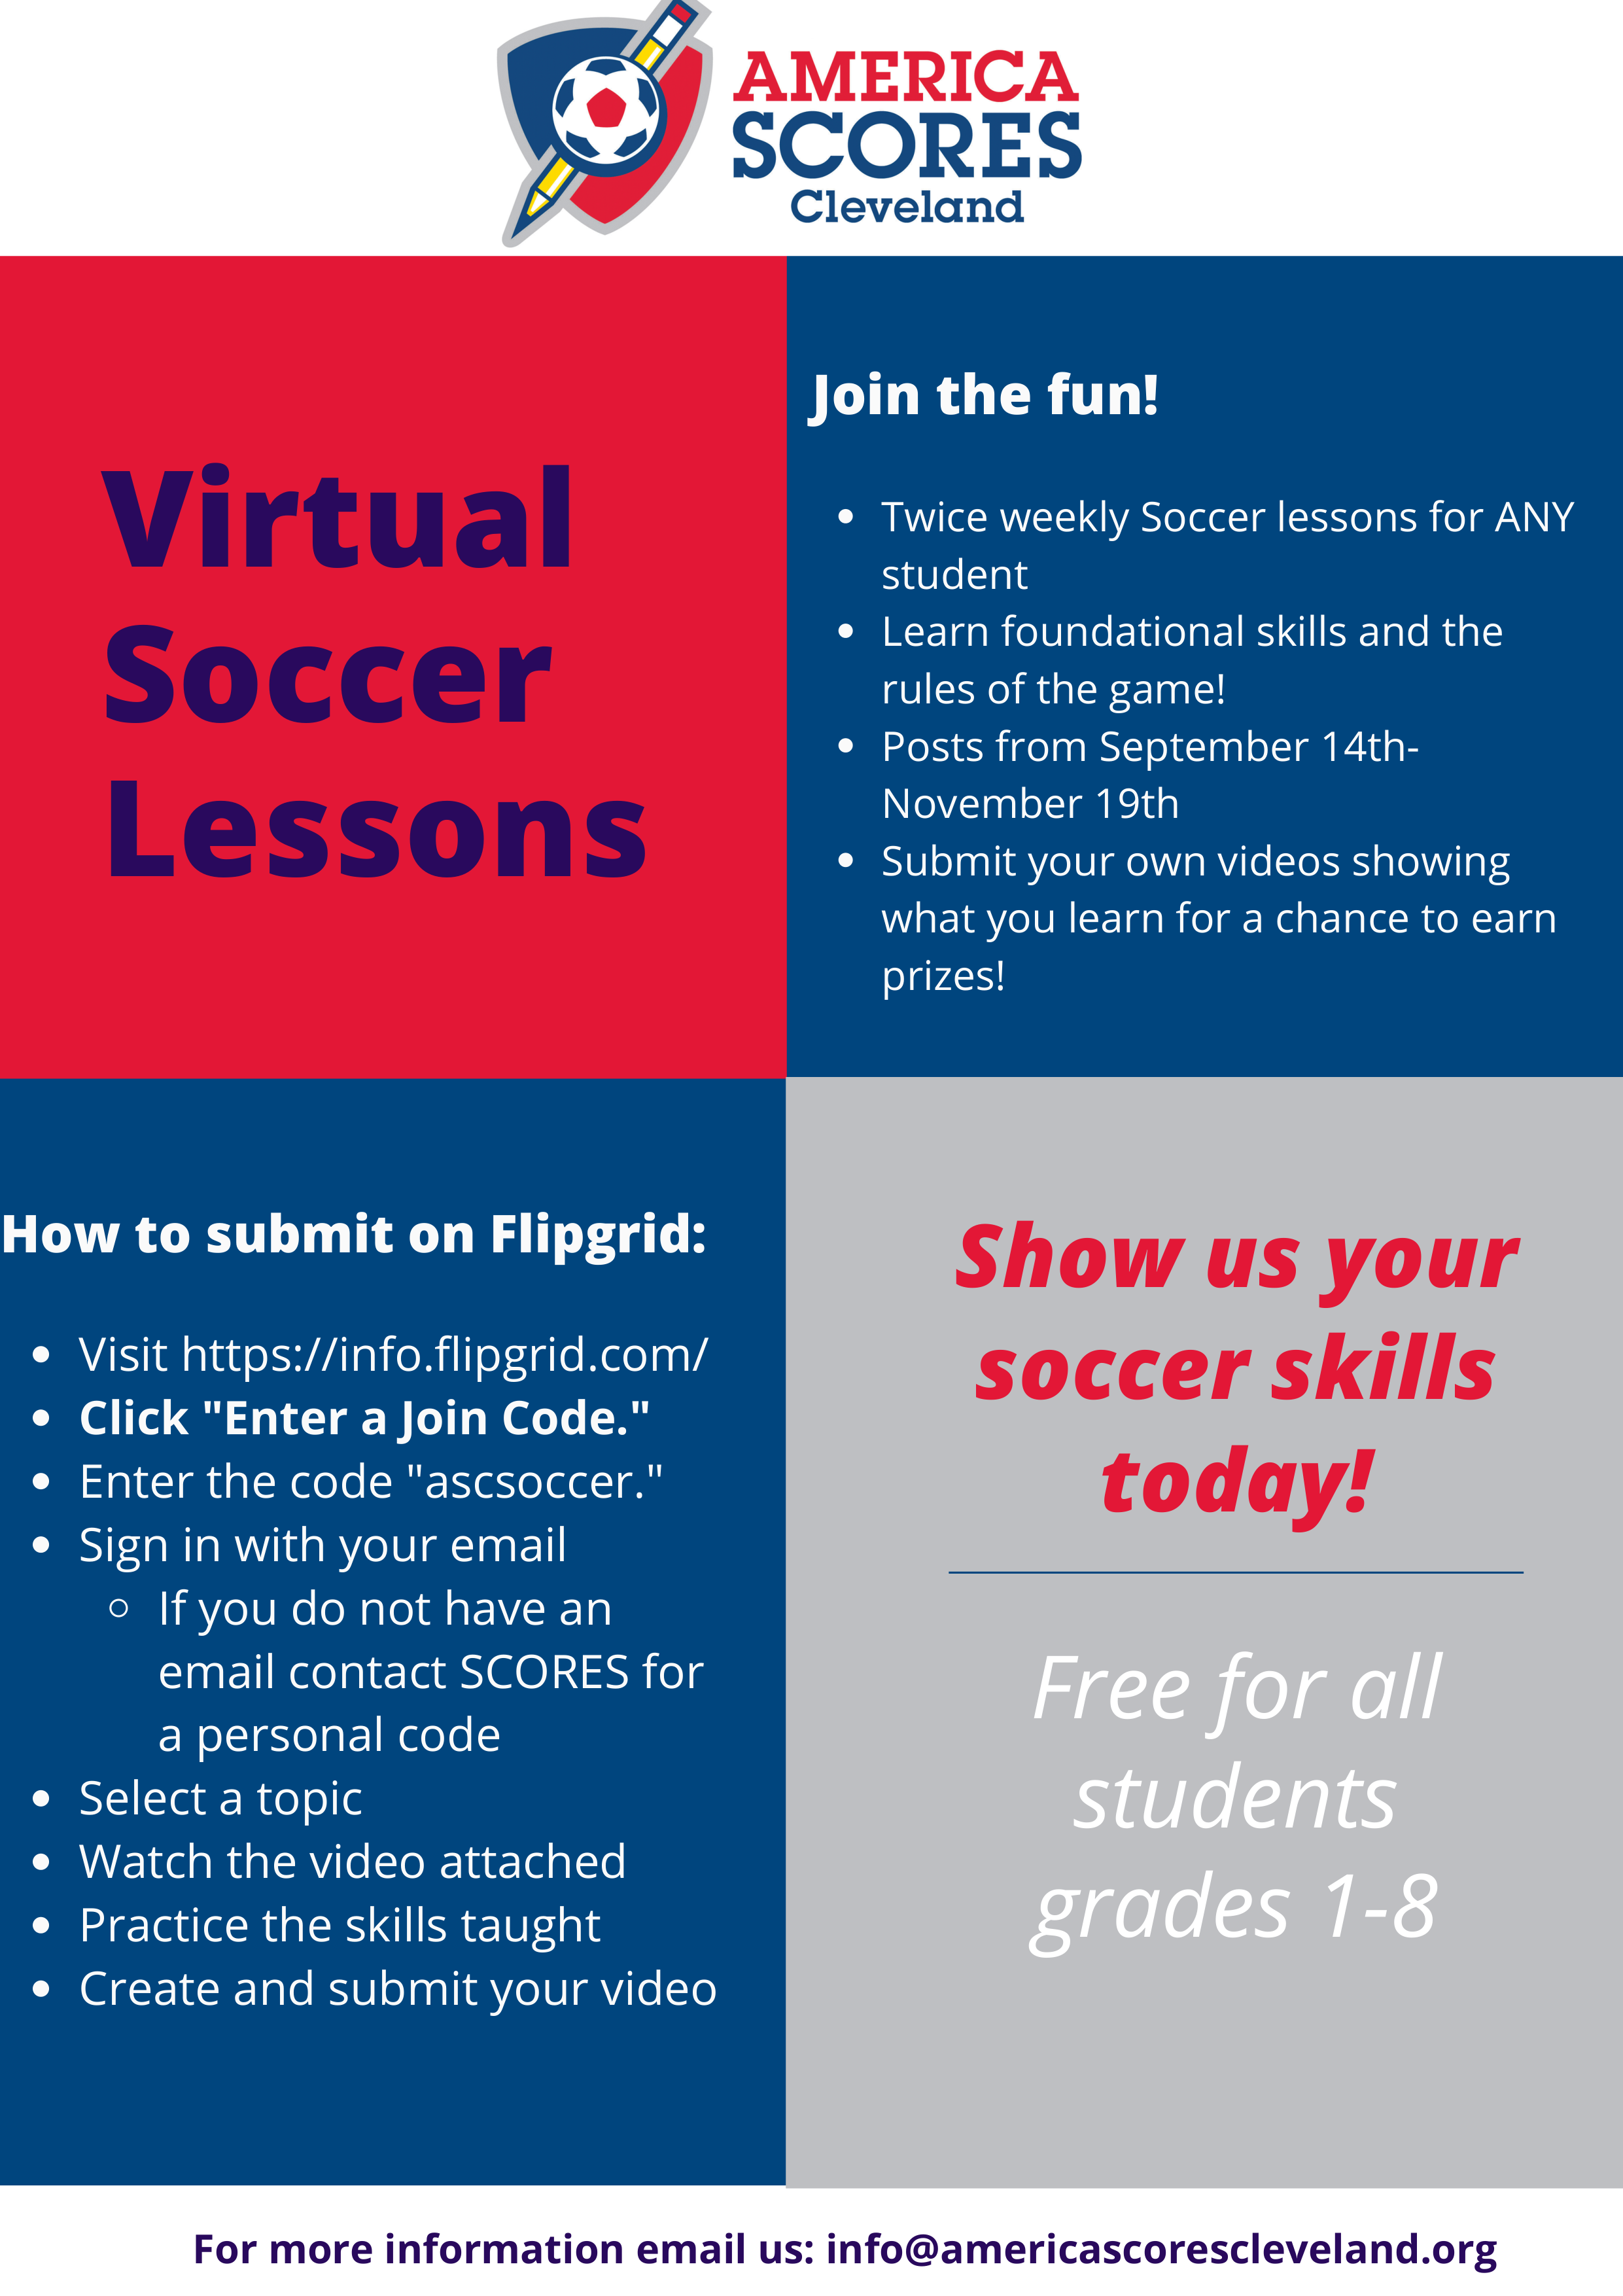 America SCORES Virtual Soccer Lessons